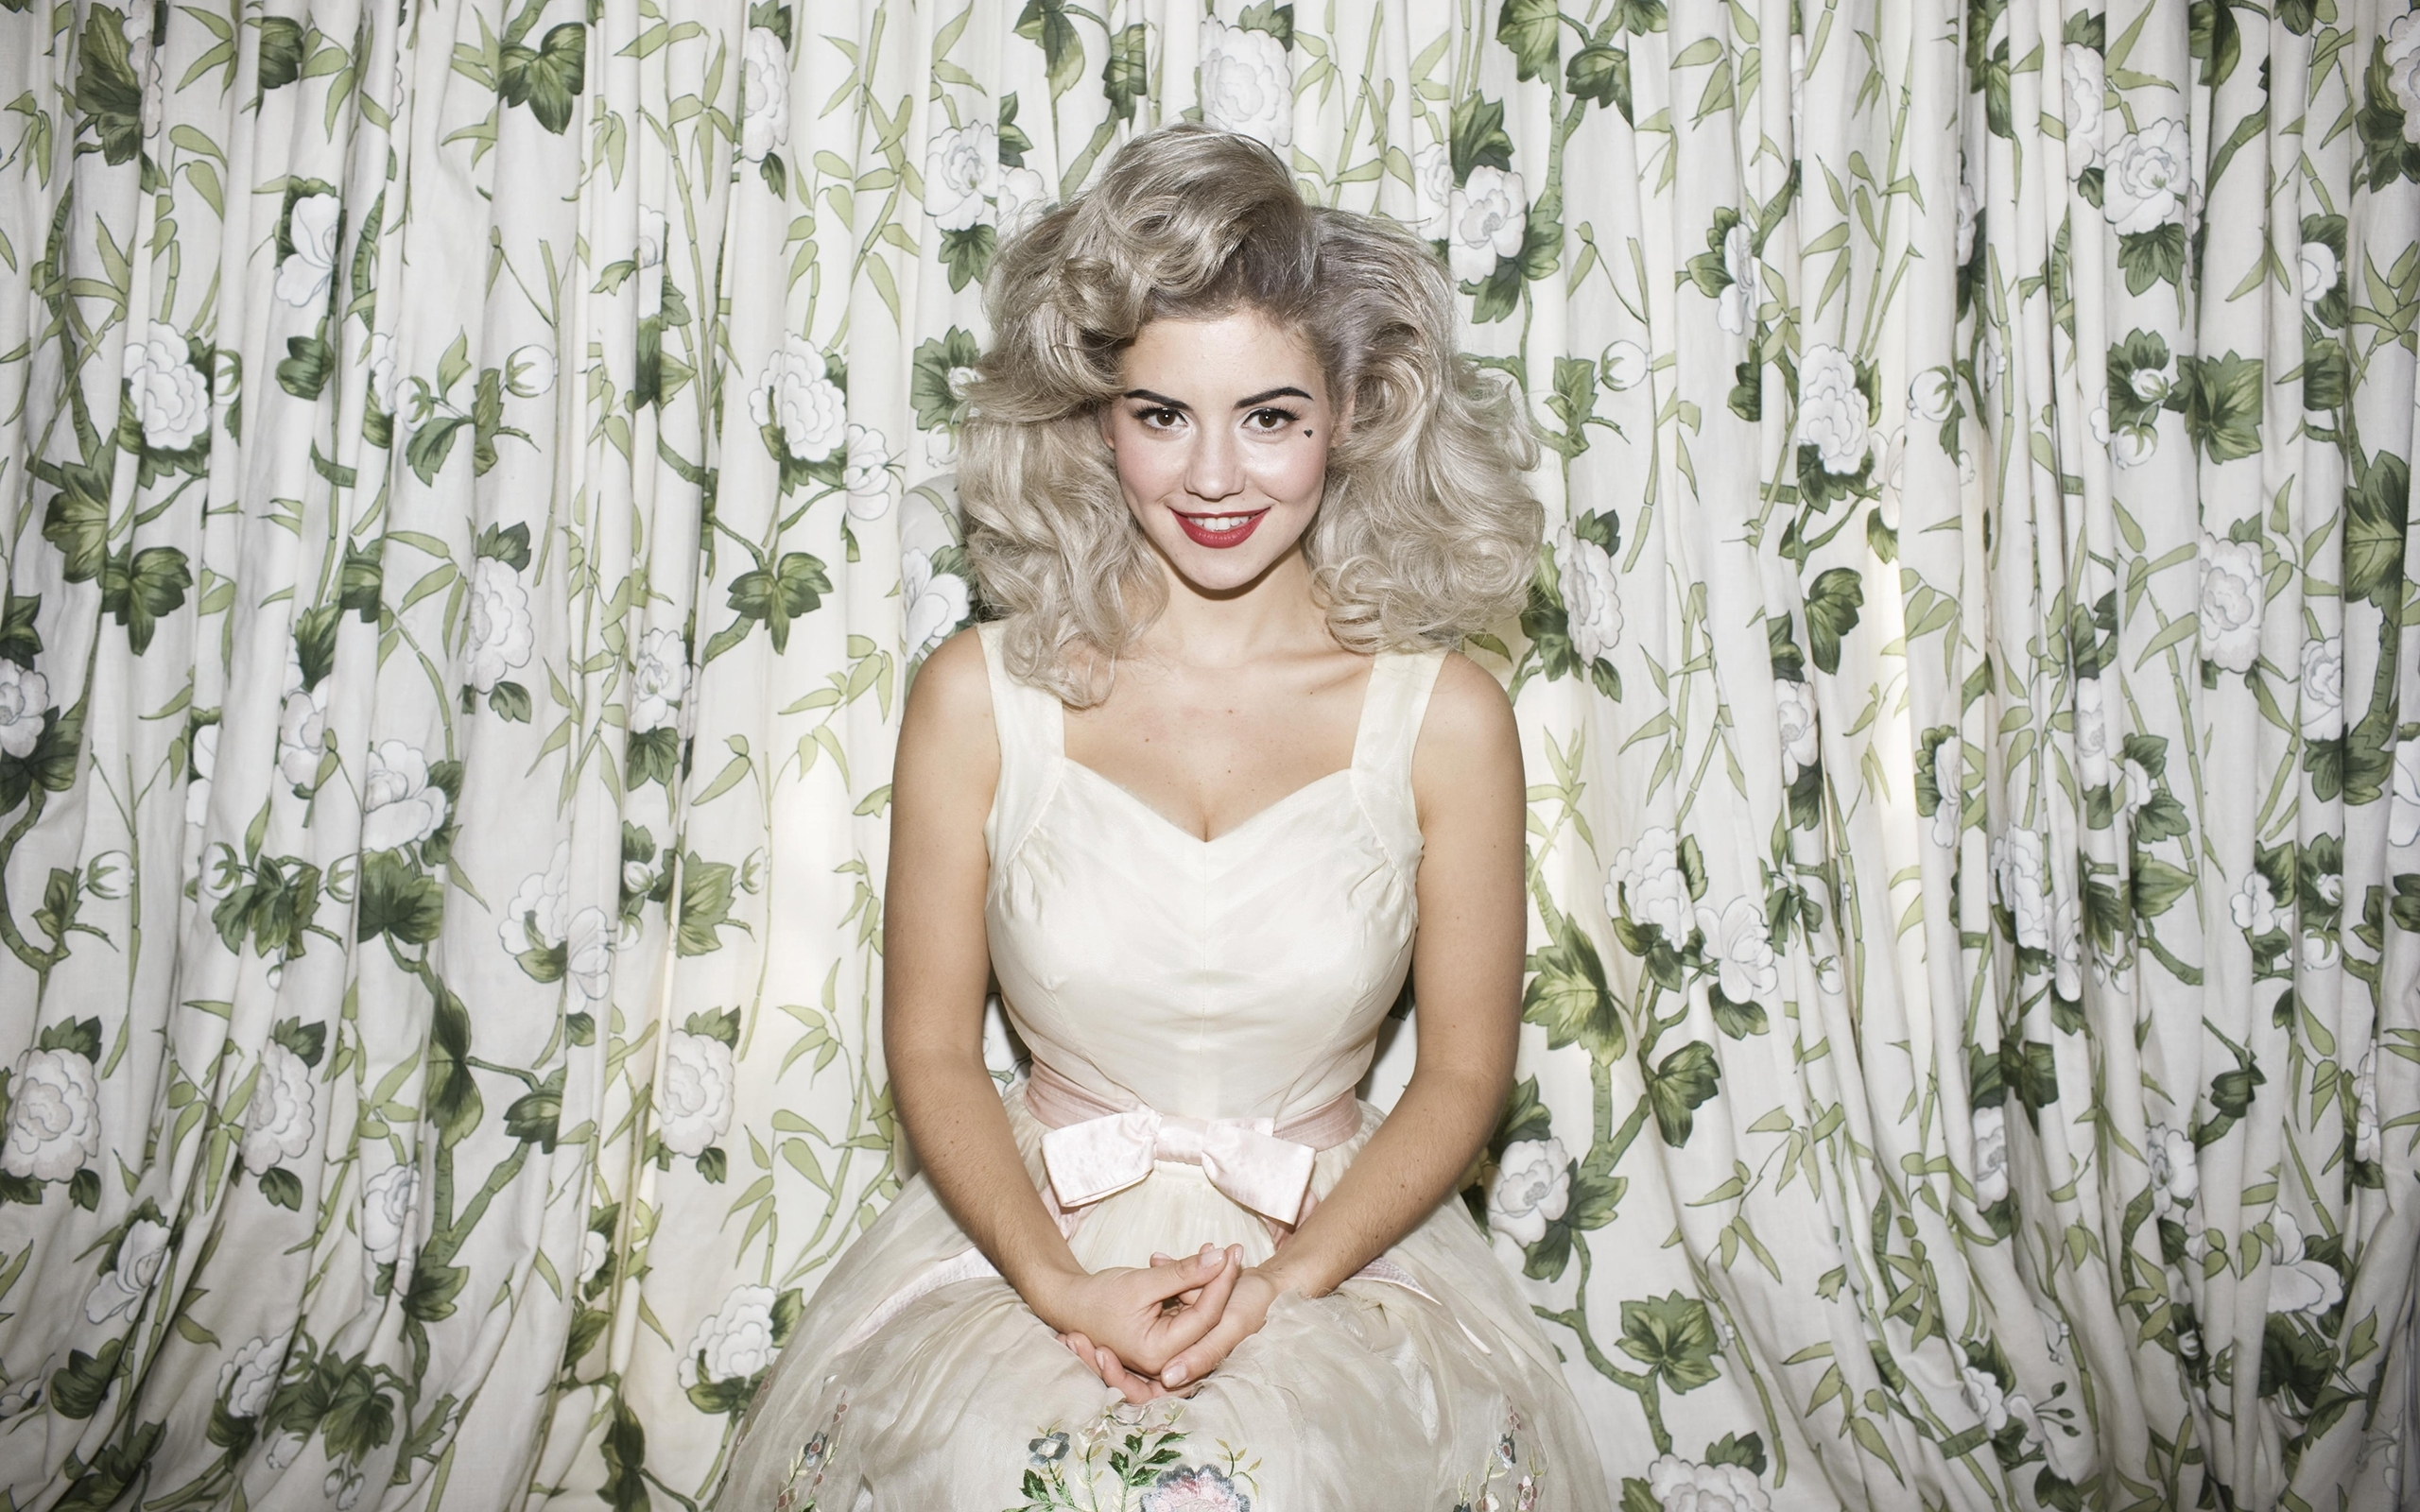 marina & the diamonds full hd wallpaper and background image